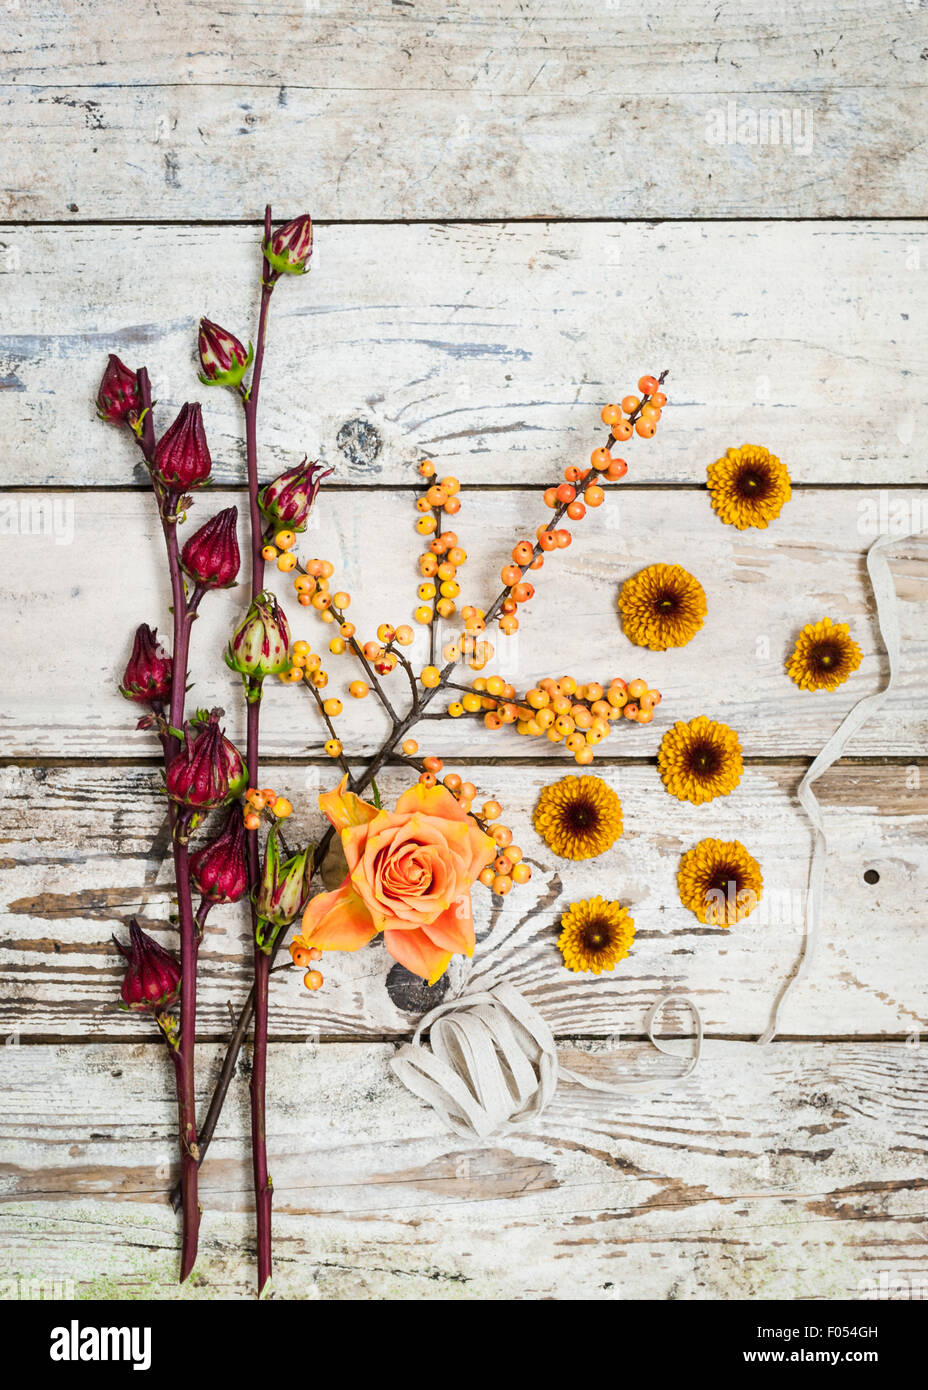 an arrangement of autumn berries and flowers in warm colours on a rustic wooden background - Stock Image